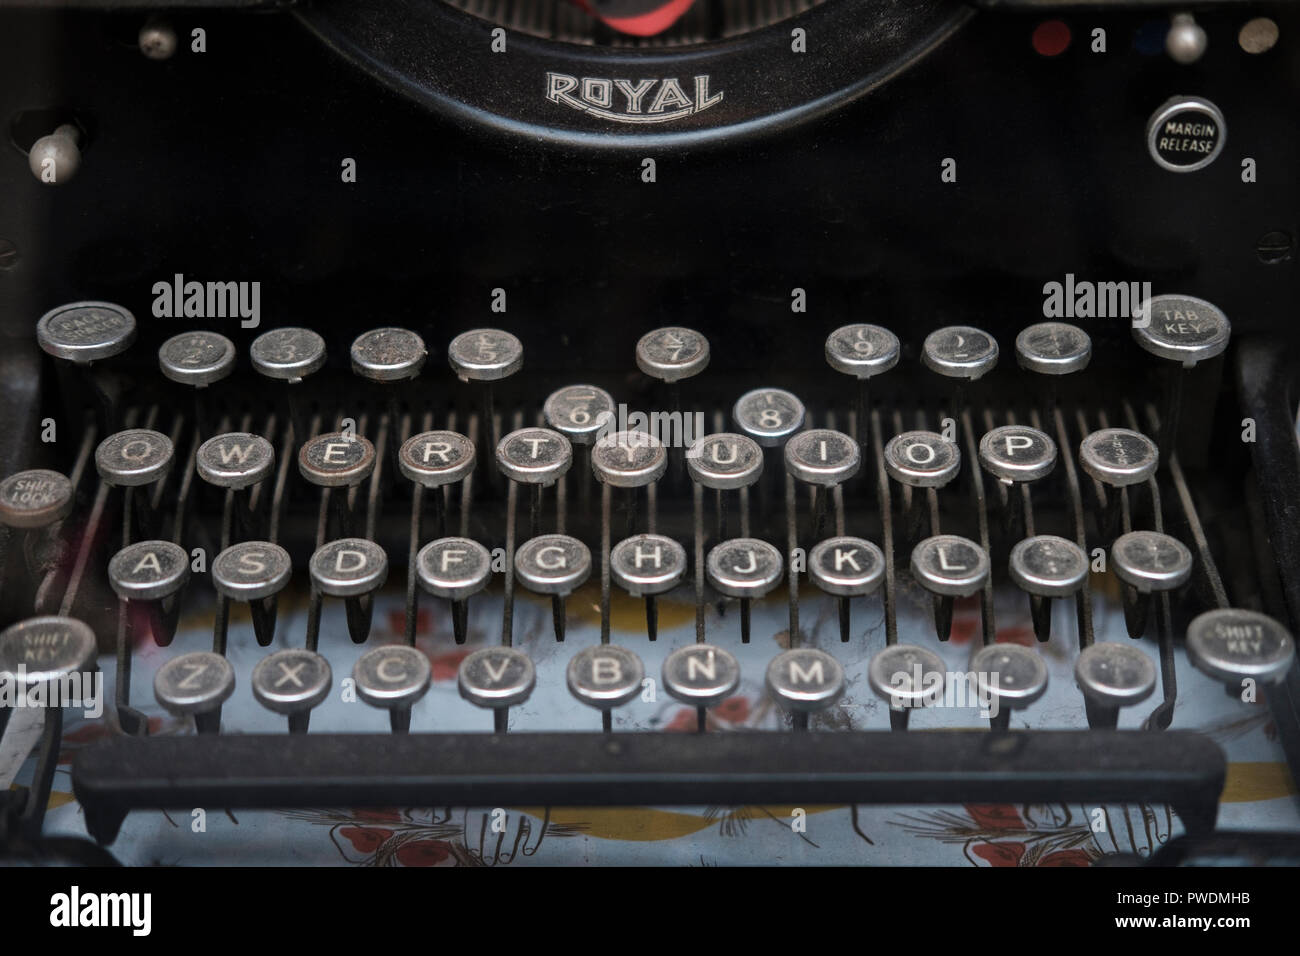 Antique Royal Typewriter covered in dust - Stock Image